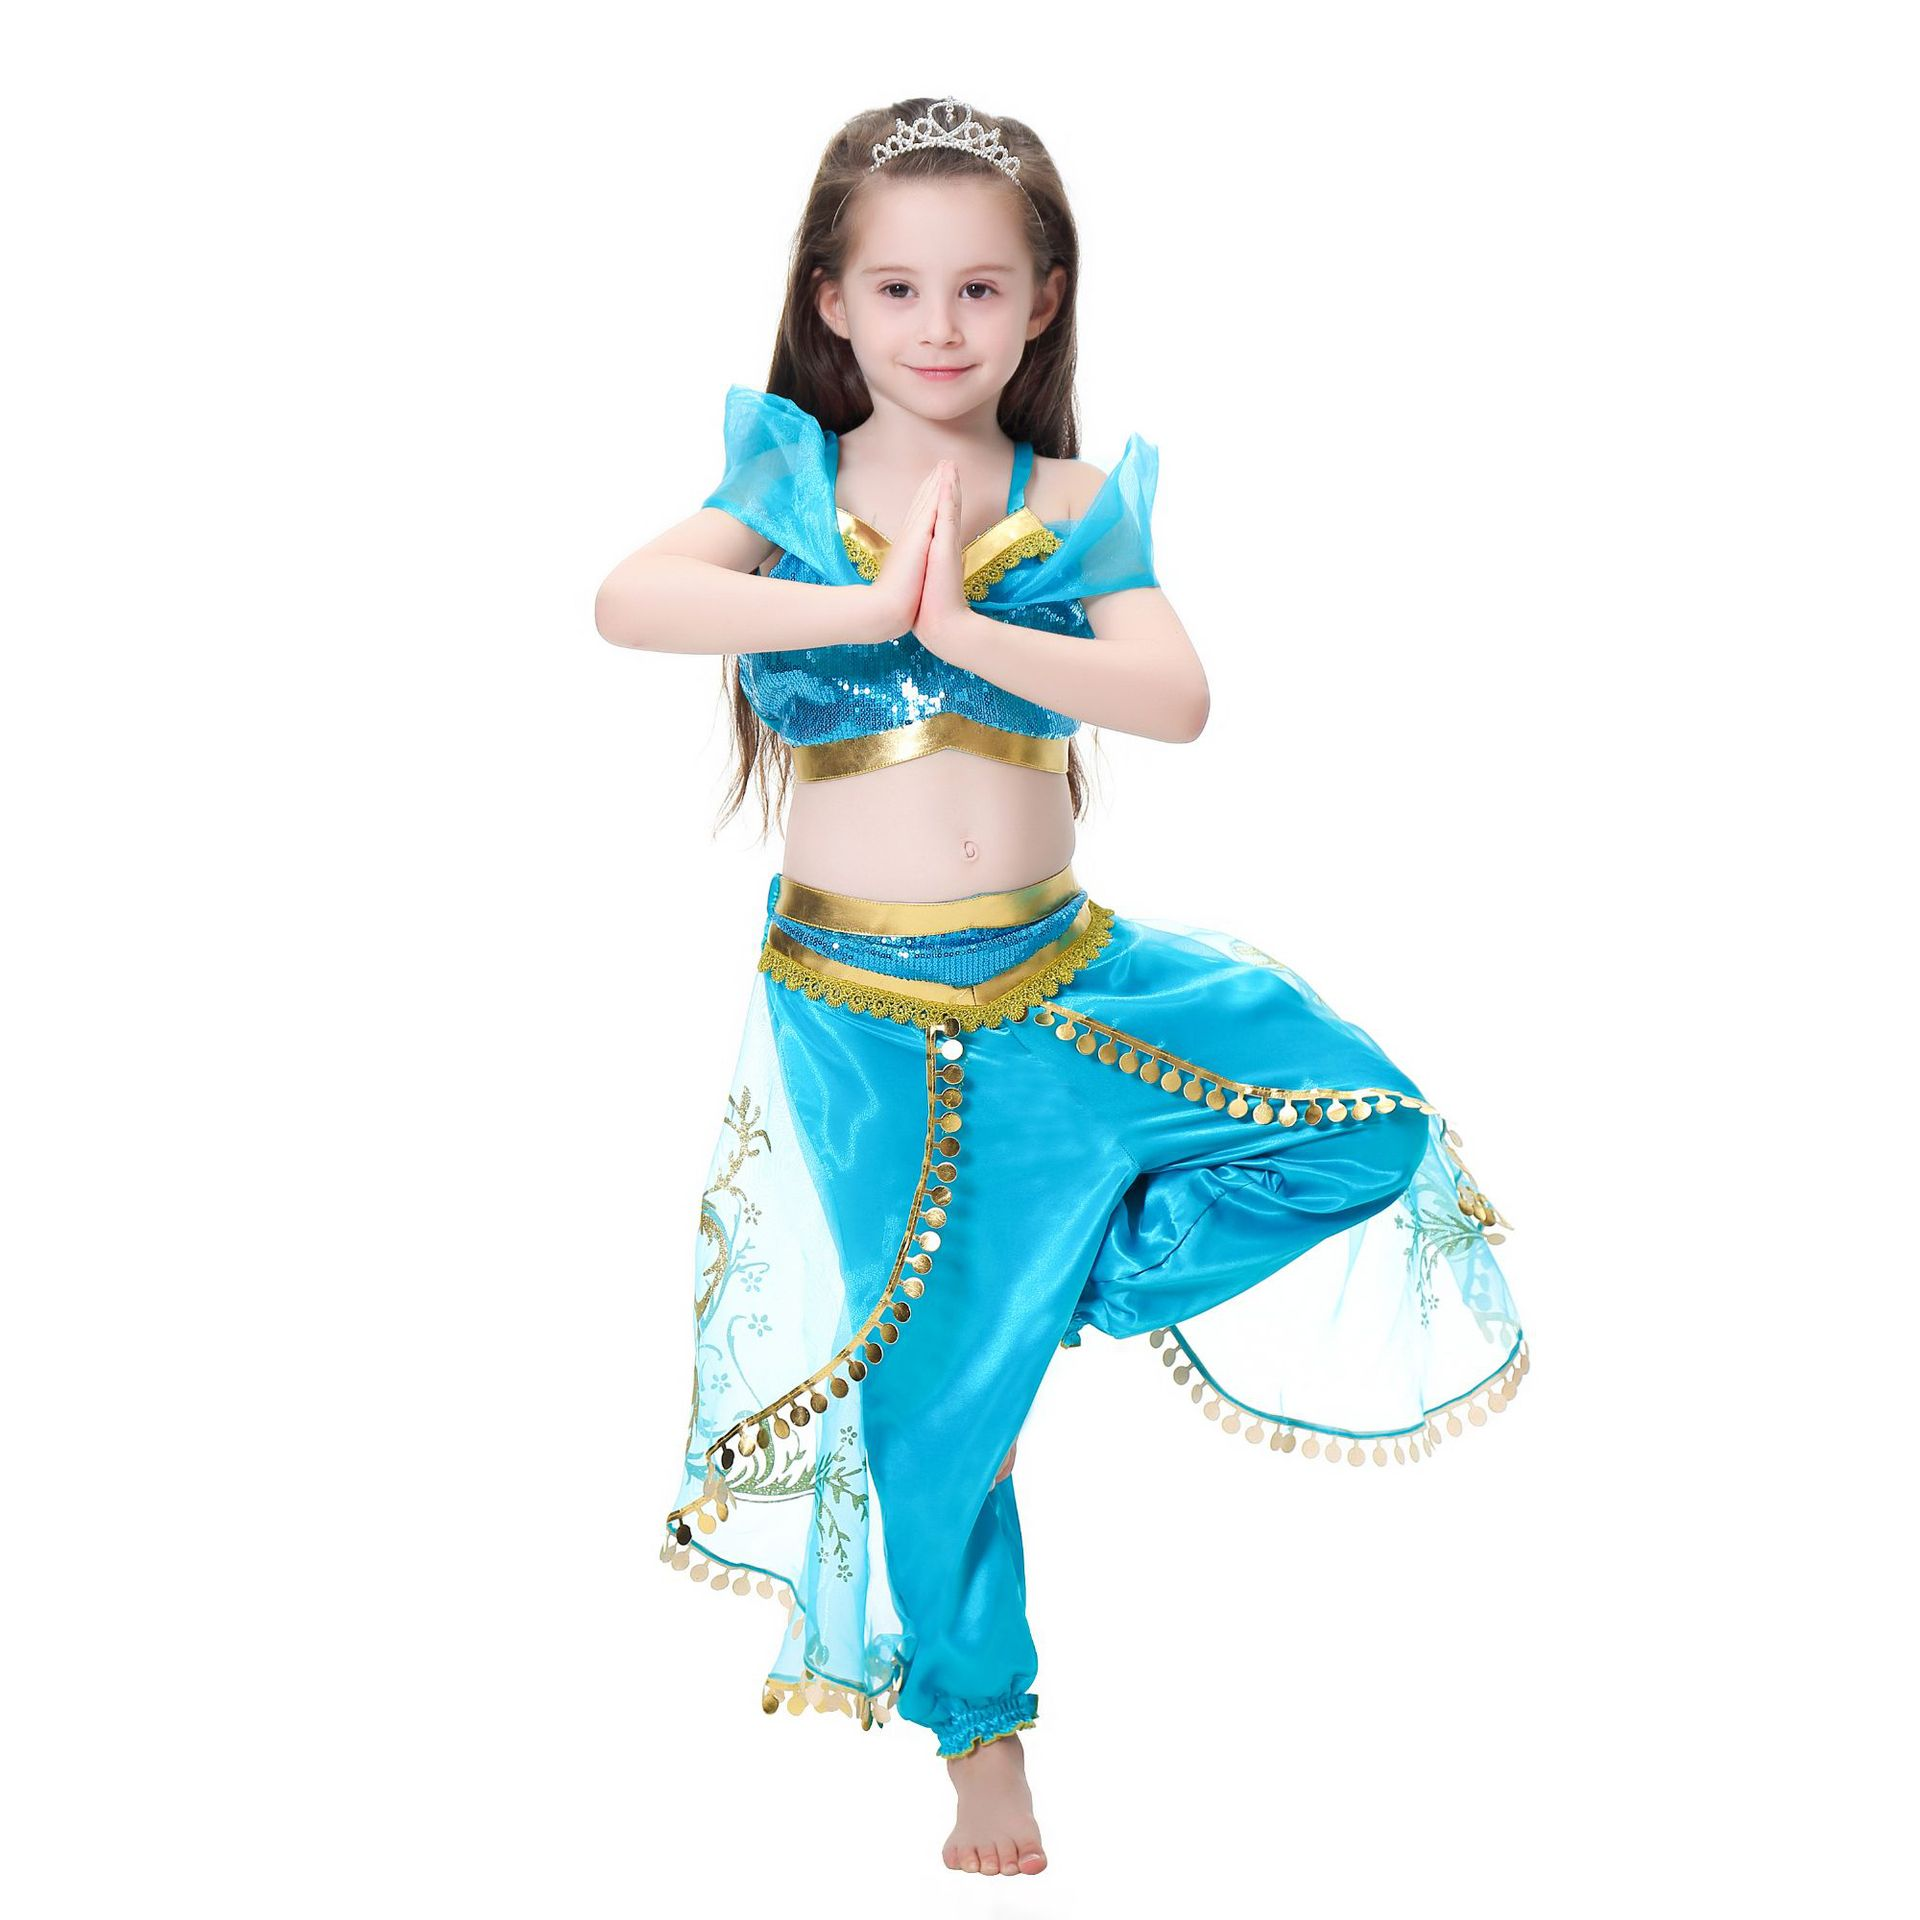 Kids Girls Carnival Clothing  Aladdin Jasmine Princess Cosplay Costume  Halloween Belly Dancer Top Pants Party Clothes